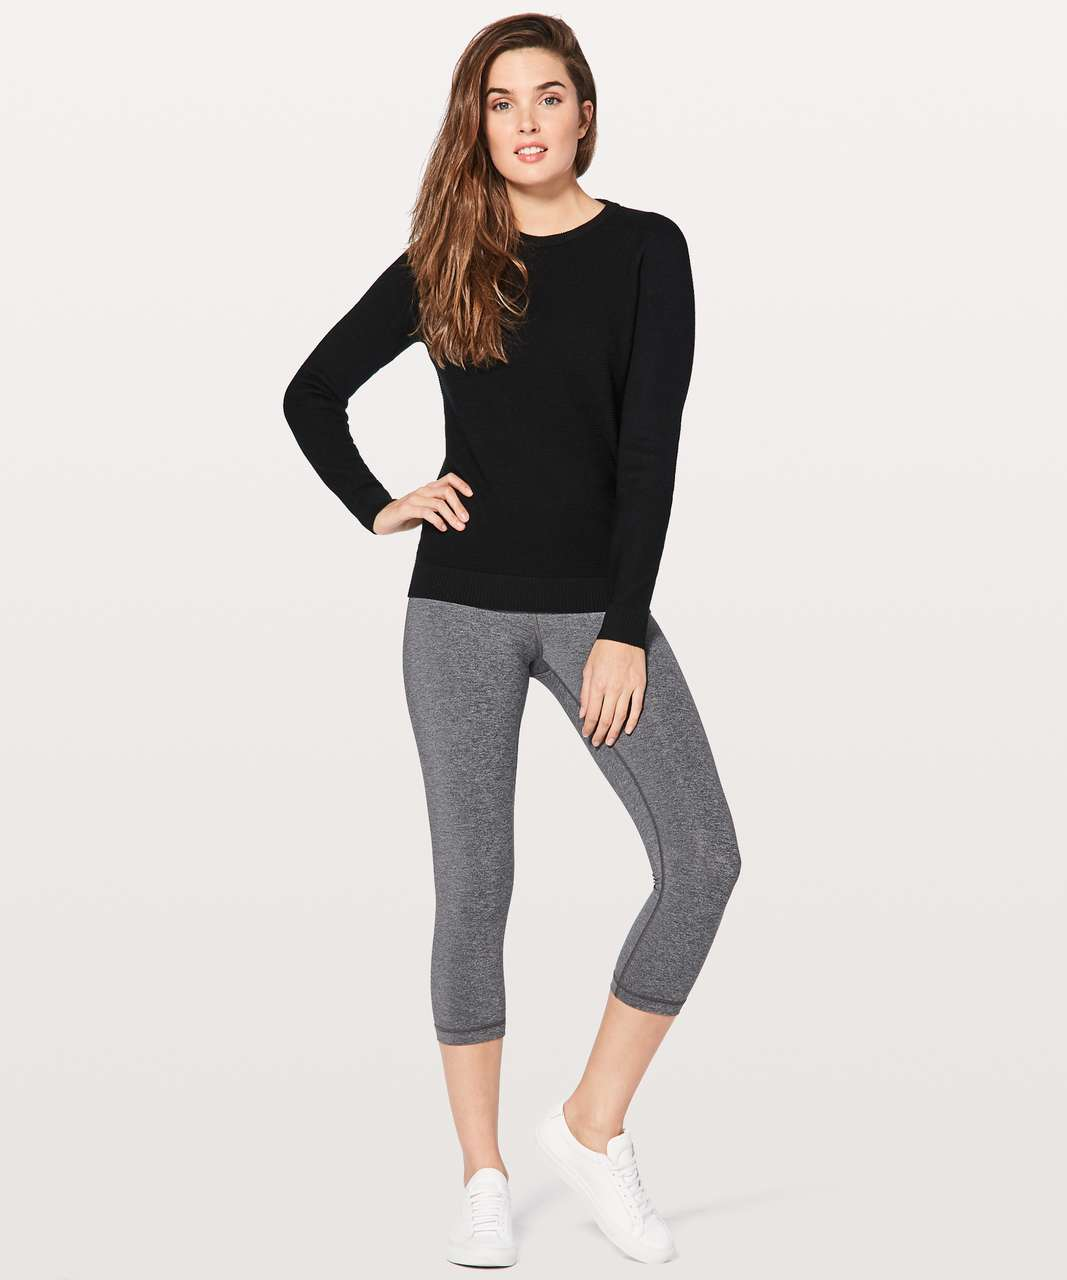 Lululemon Simply Wool Sweater - Black